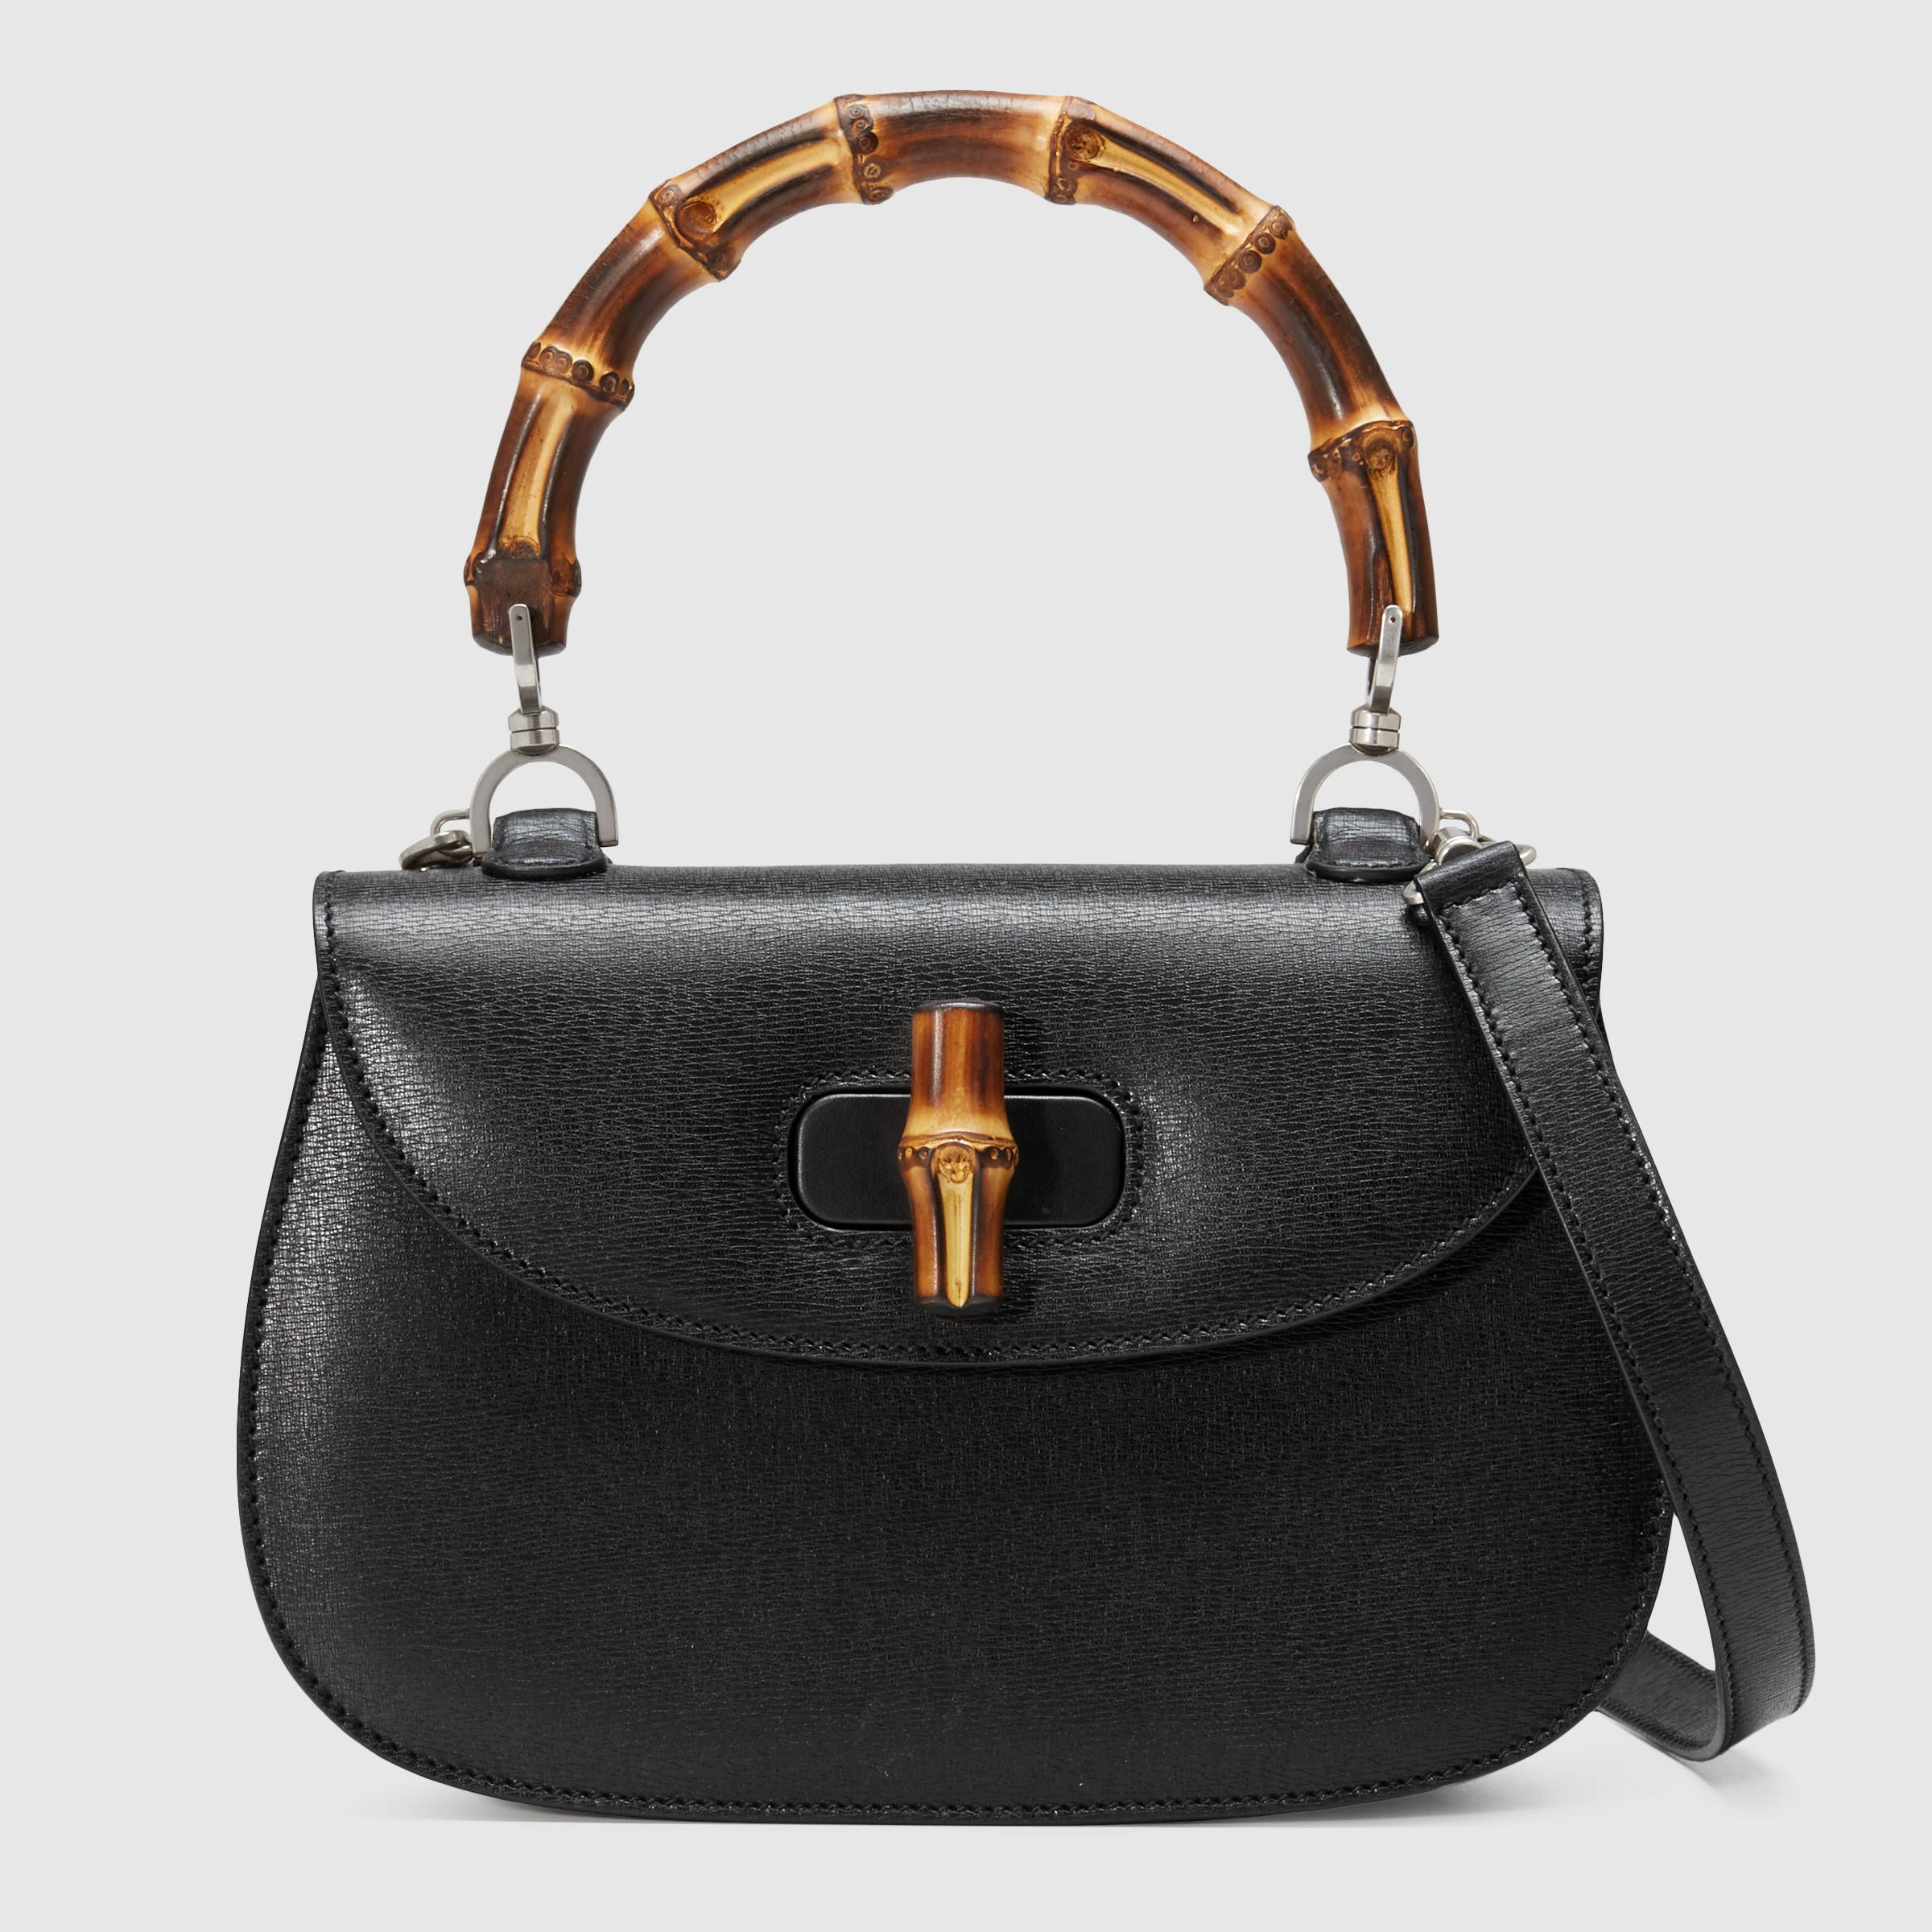 new product 0af8e 9882c Pin by 我爱礼拜天 on Bag   Gucci bamboo bag, Gucci bamboo ...